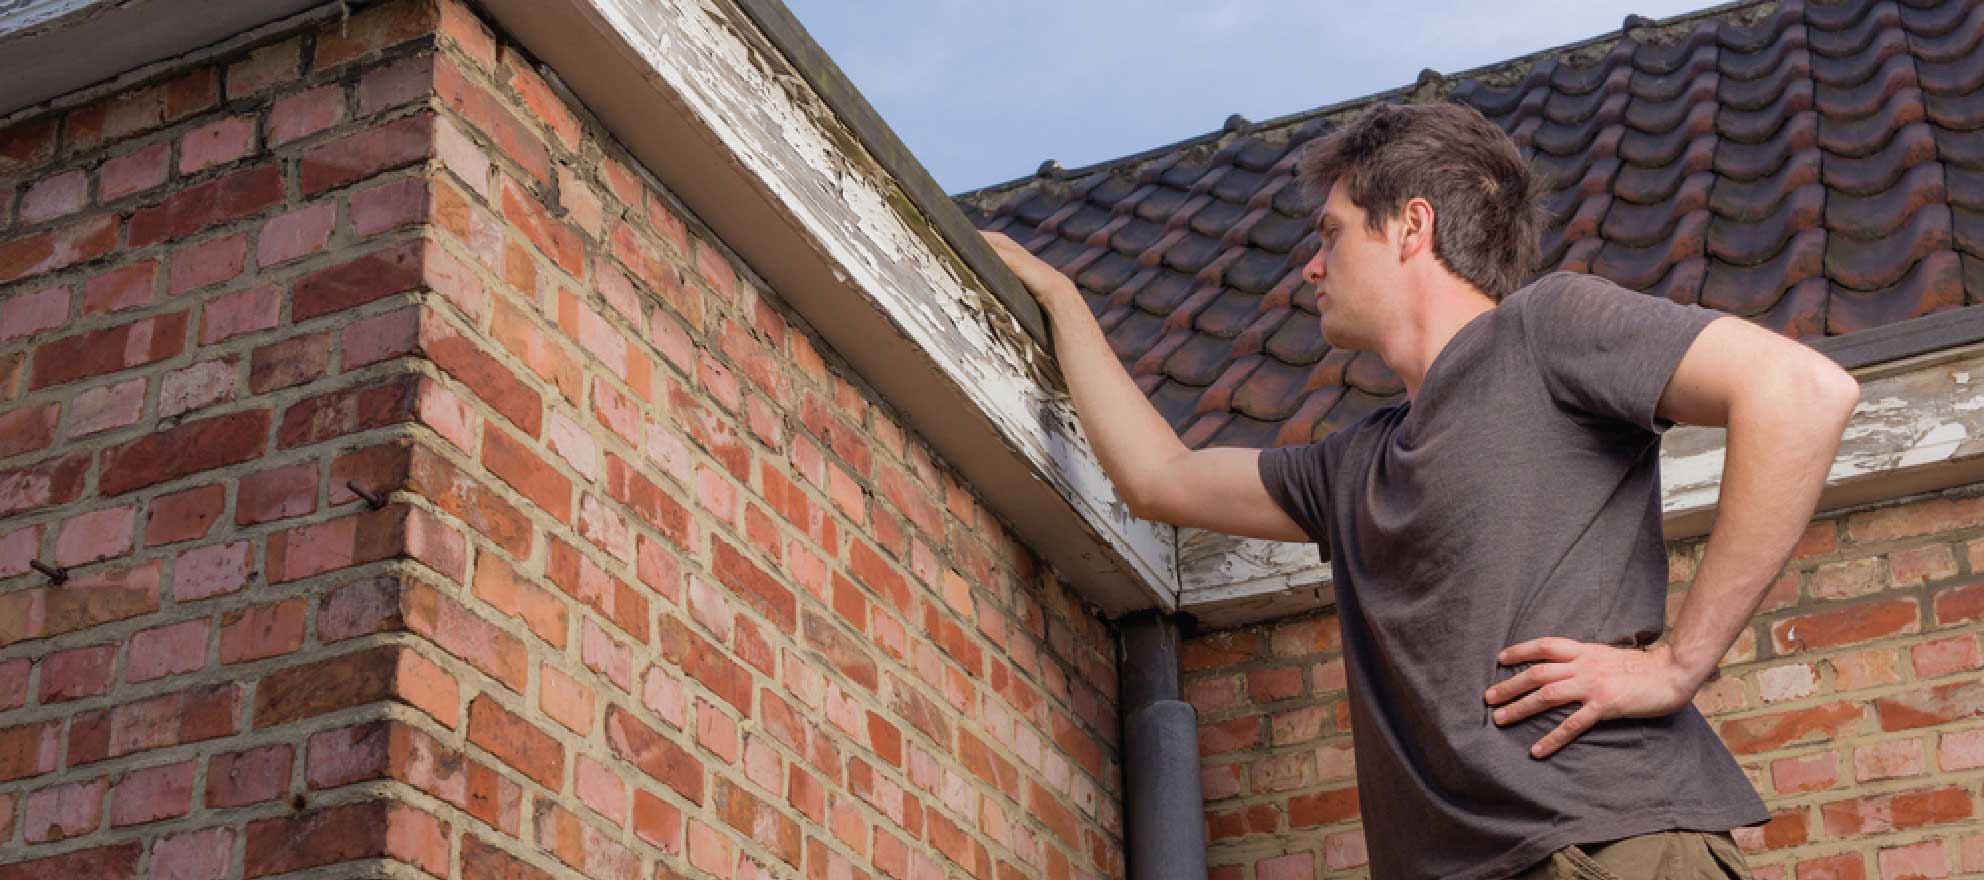 9 vital home repairs to complete before negotiating a sale